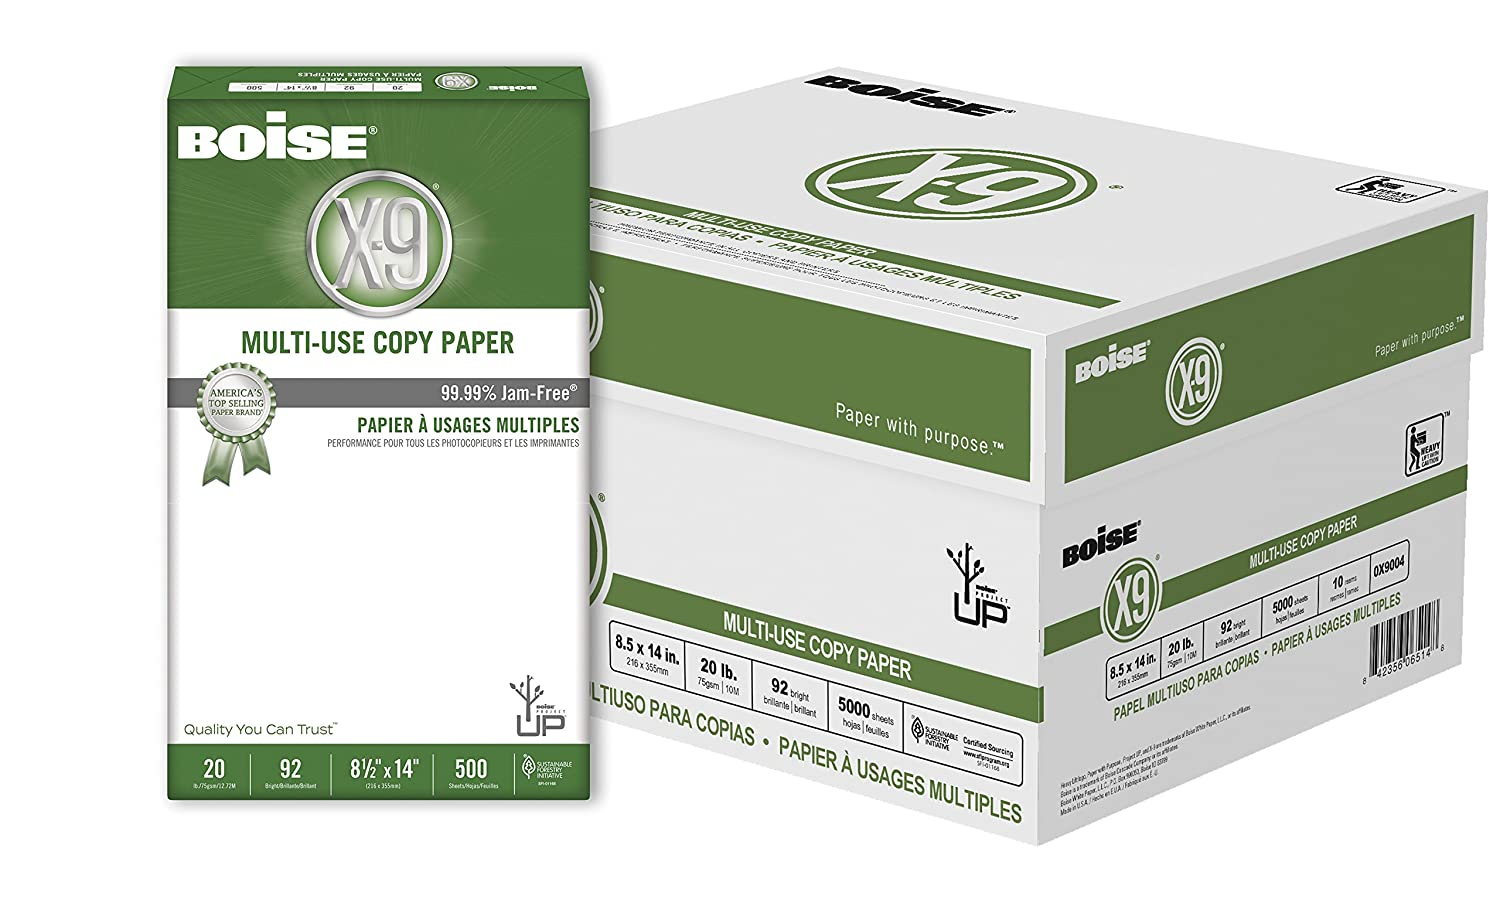 amazon com boise x 9 multi use copy paper 8 5 x 14 92 bright